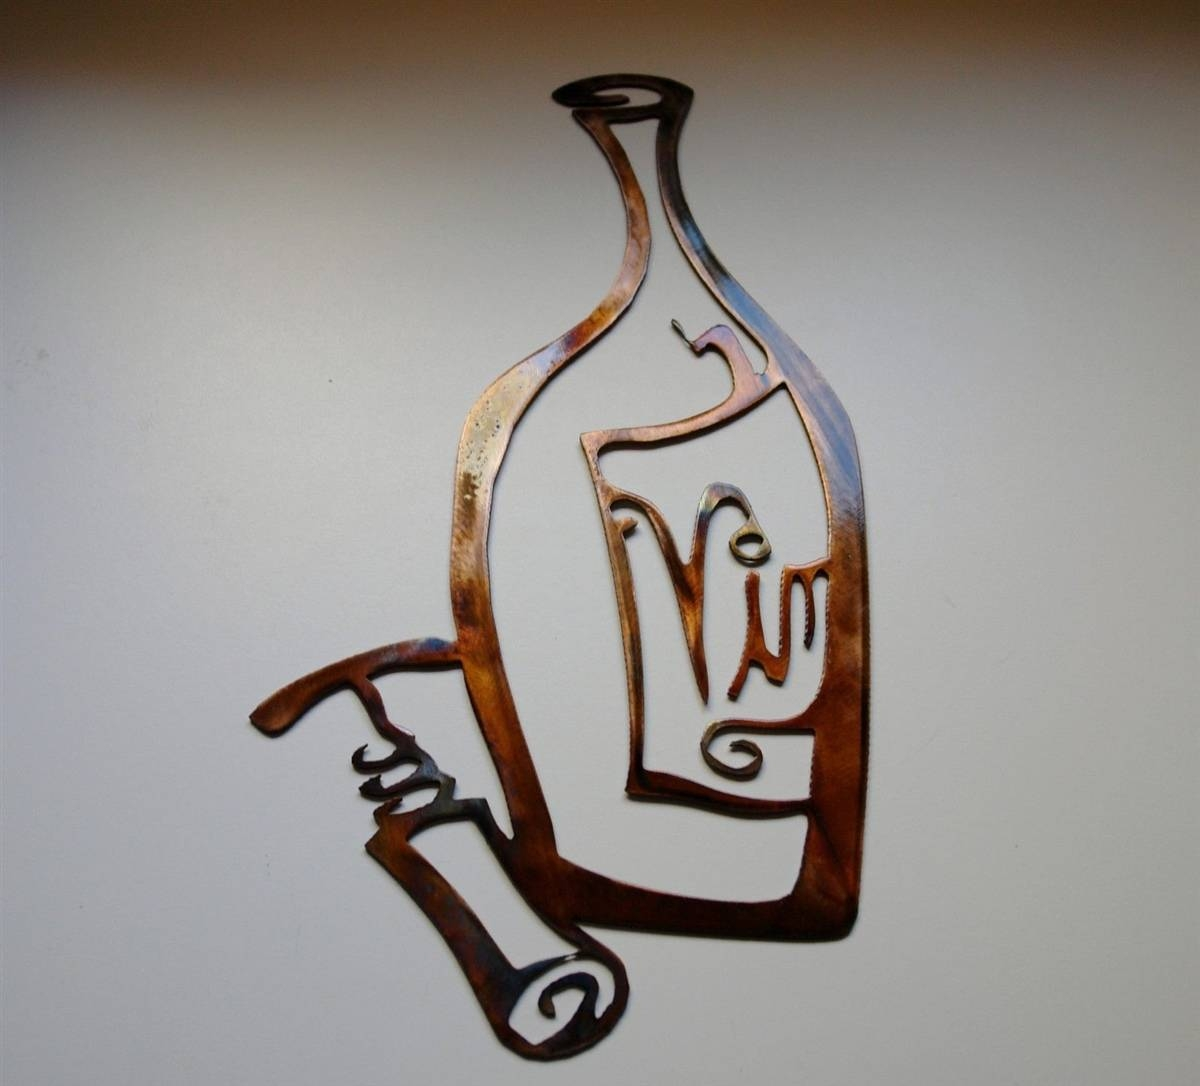 Metal Wall Art Decor, Wine Bottle And Opener Copper & Bronze Plated Within 2017 Wine Bottle Metal Wall Art (View 7 of 20)